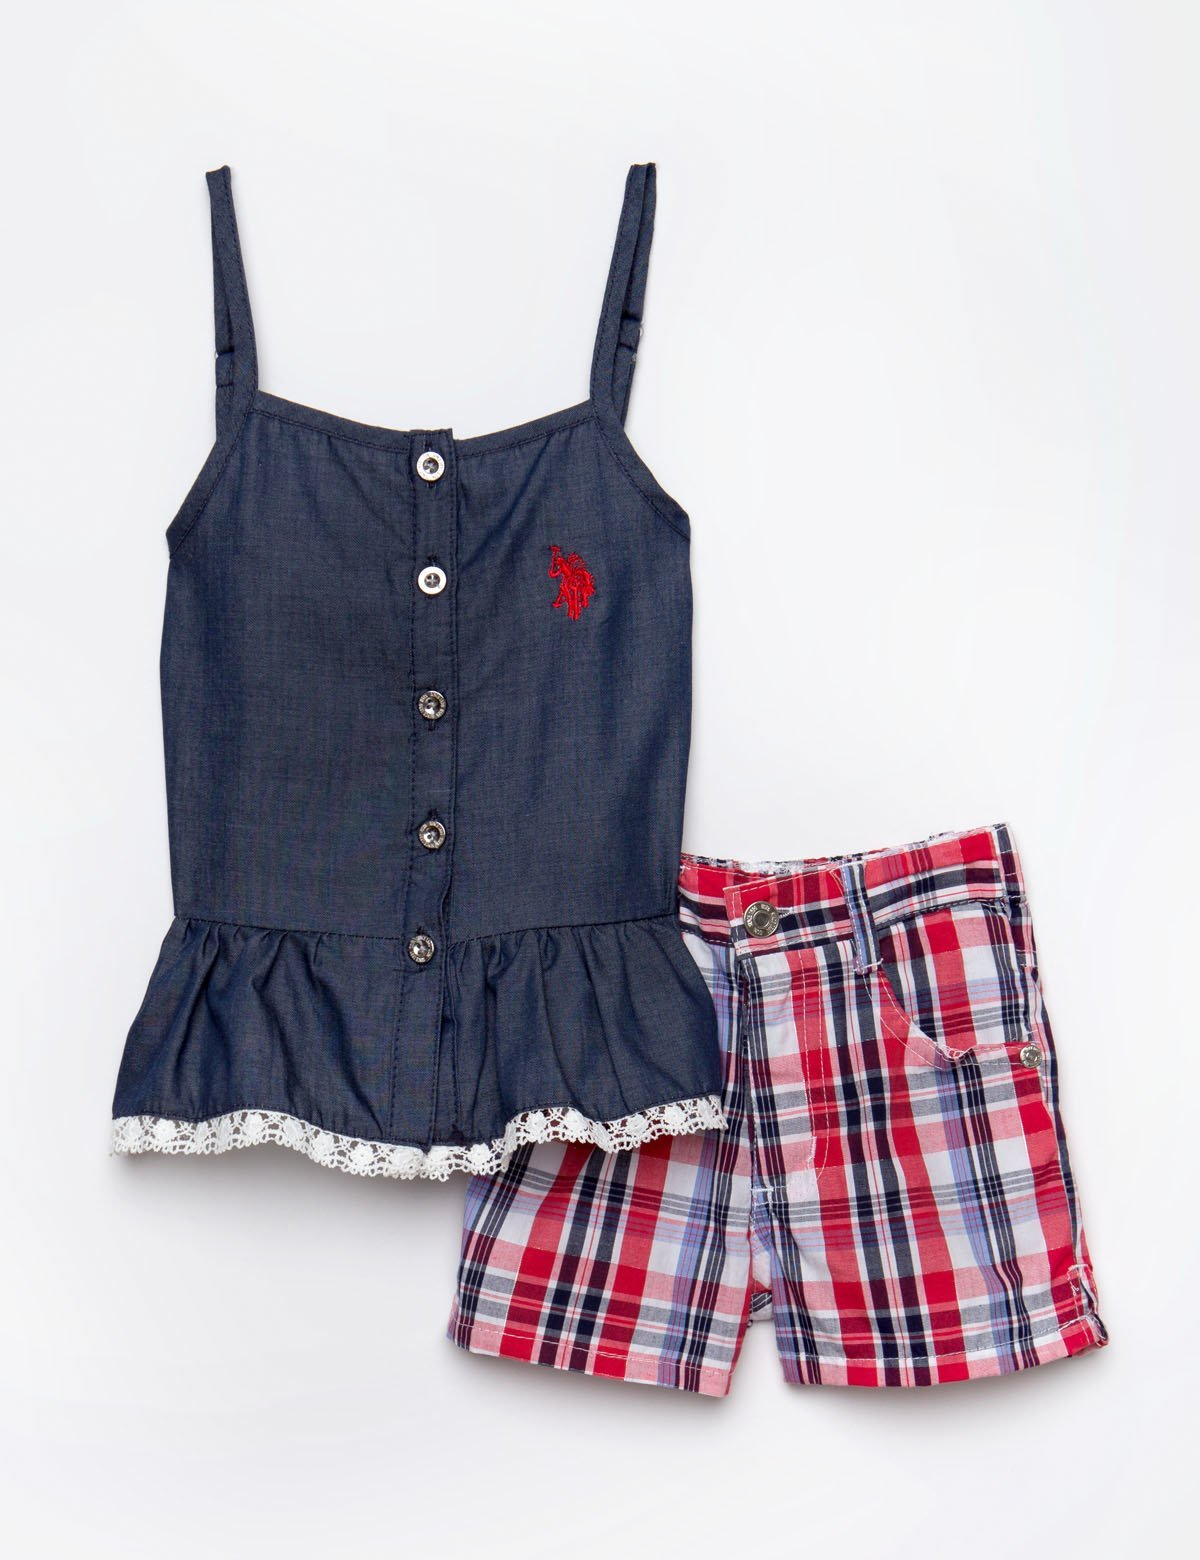 TODDLER 2 PIECE SET - TOP & SHORTS - U.S. Polo Assn.